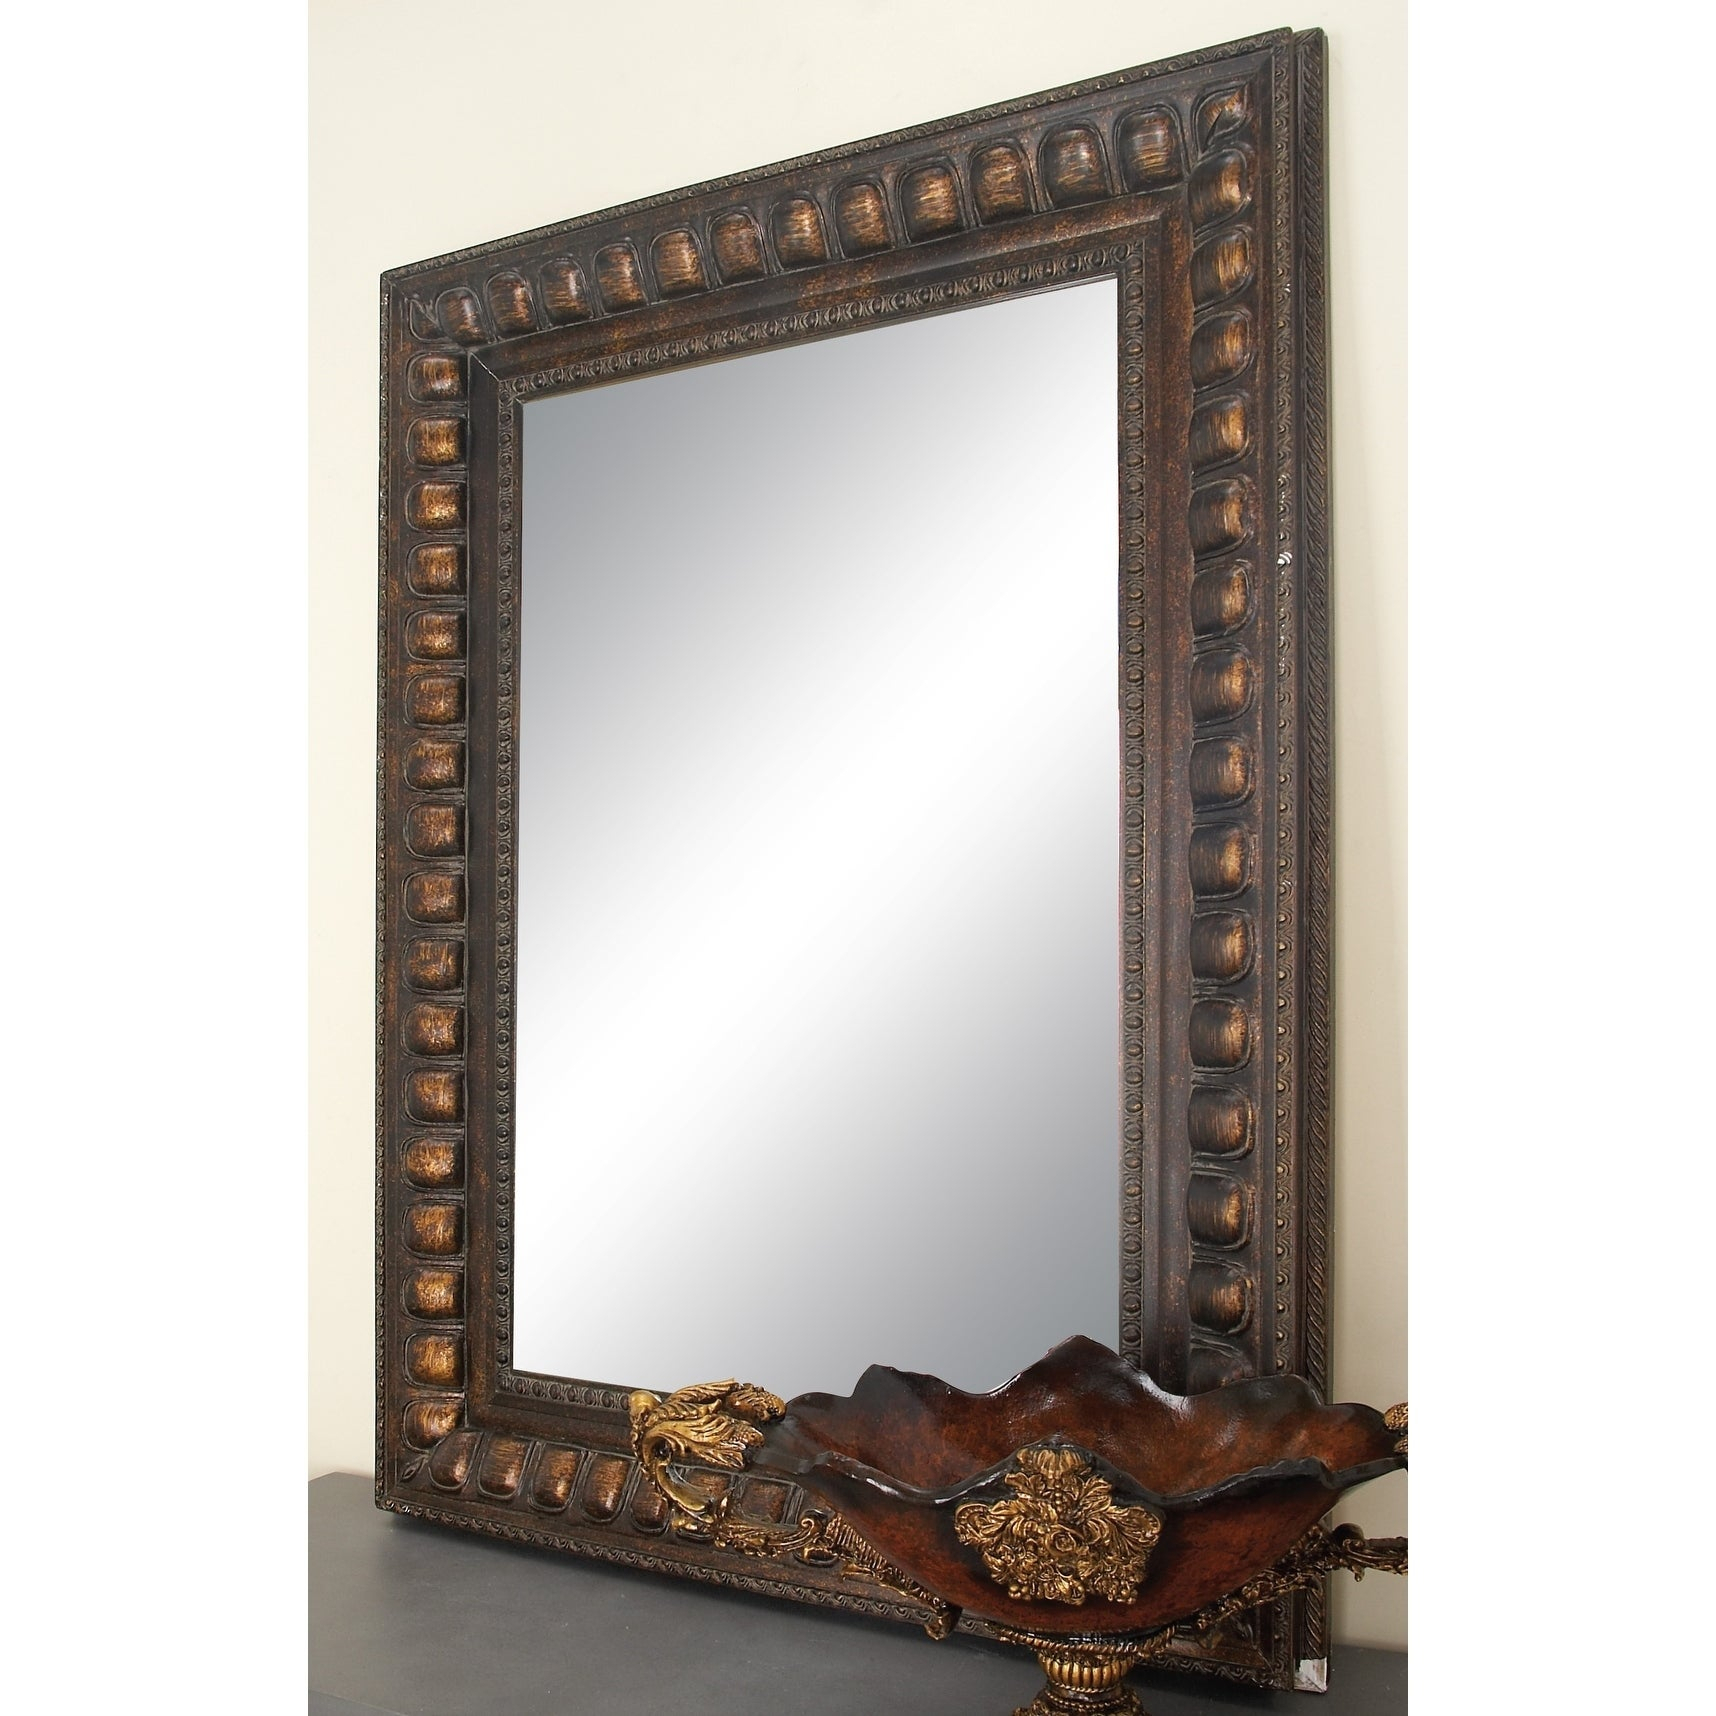 Traditional 48 X 36 Inch Brown Wood Beveled Wall Mirrorstudio 350 – N/a With Traditional Beveled Wall Mirrors (View 15 of 20)